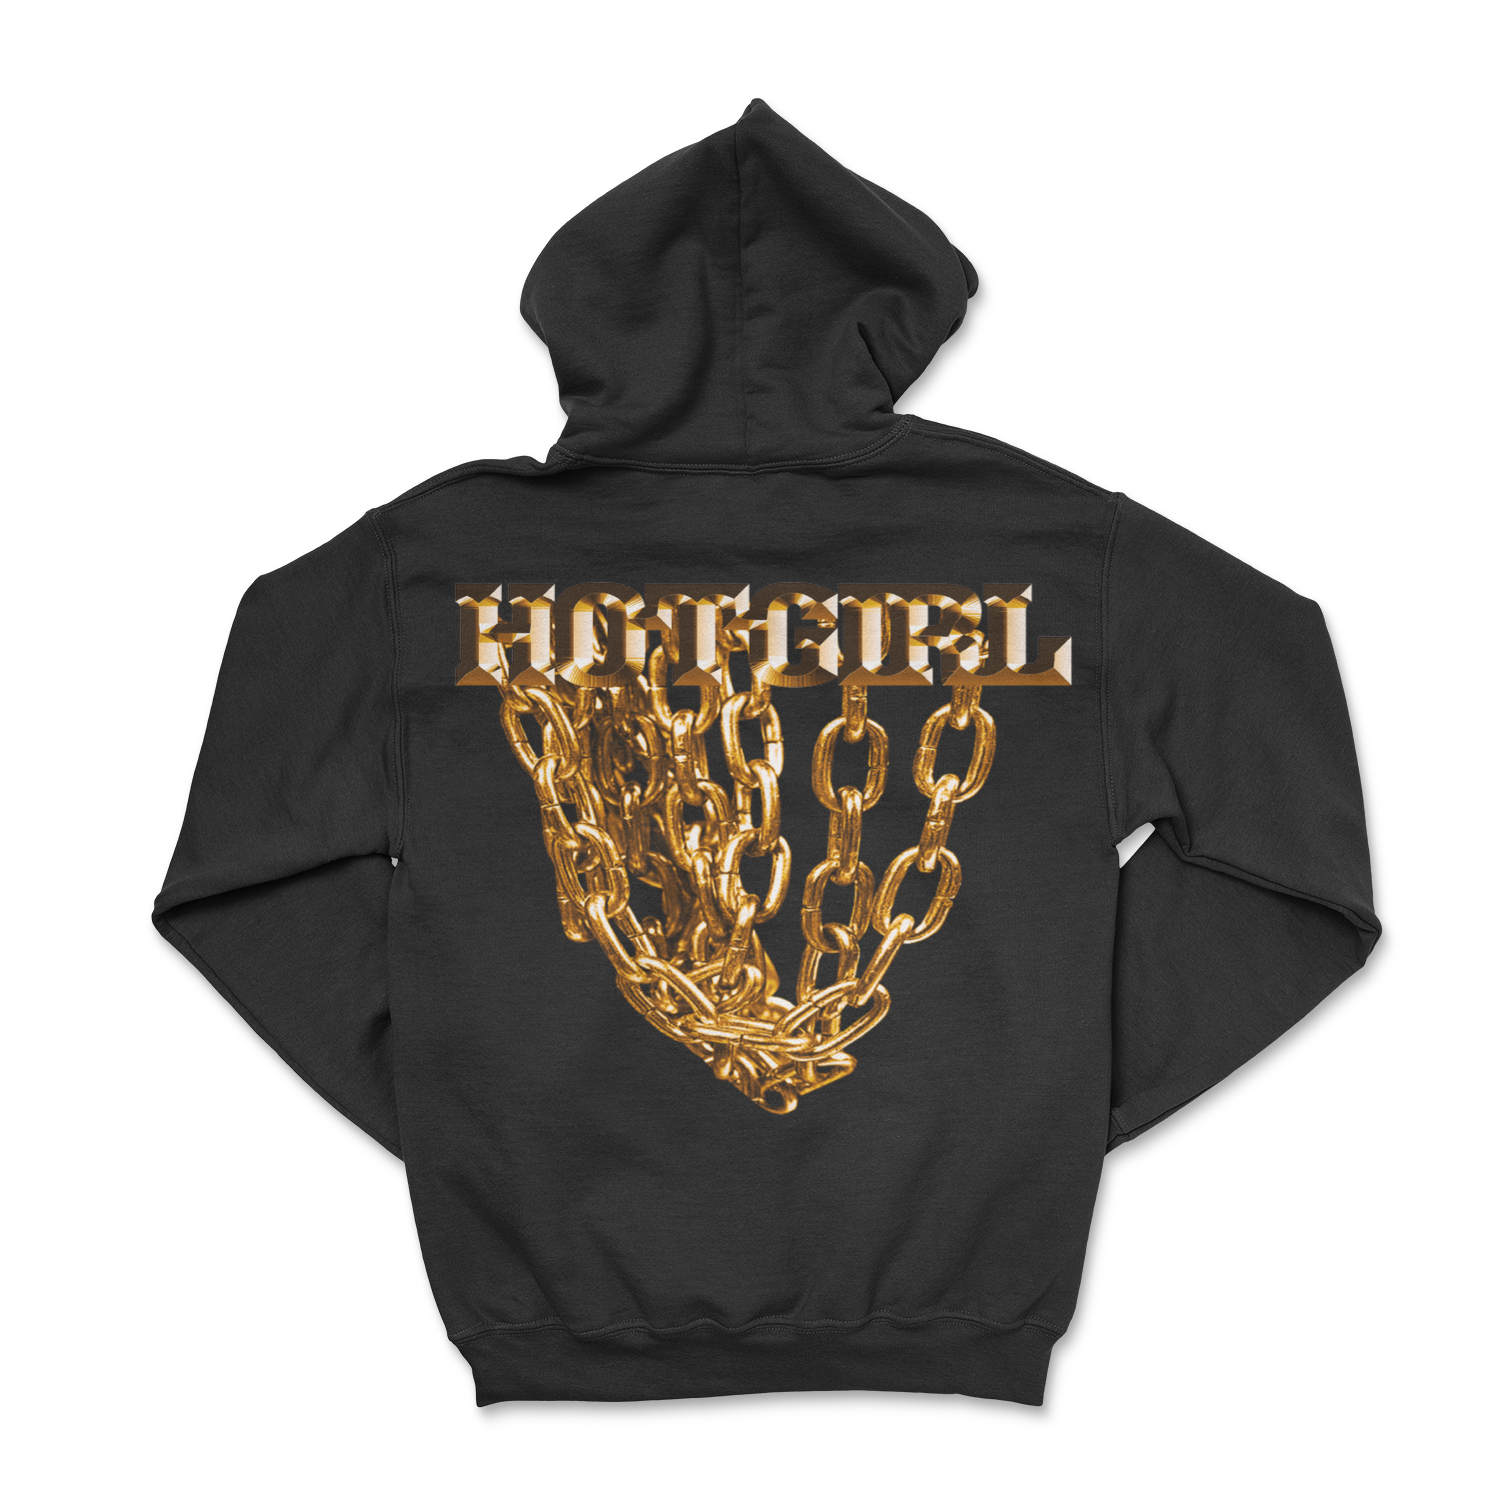 Golden Hot Girl Hoodie